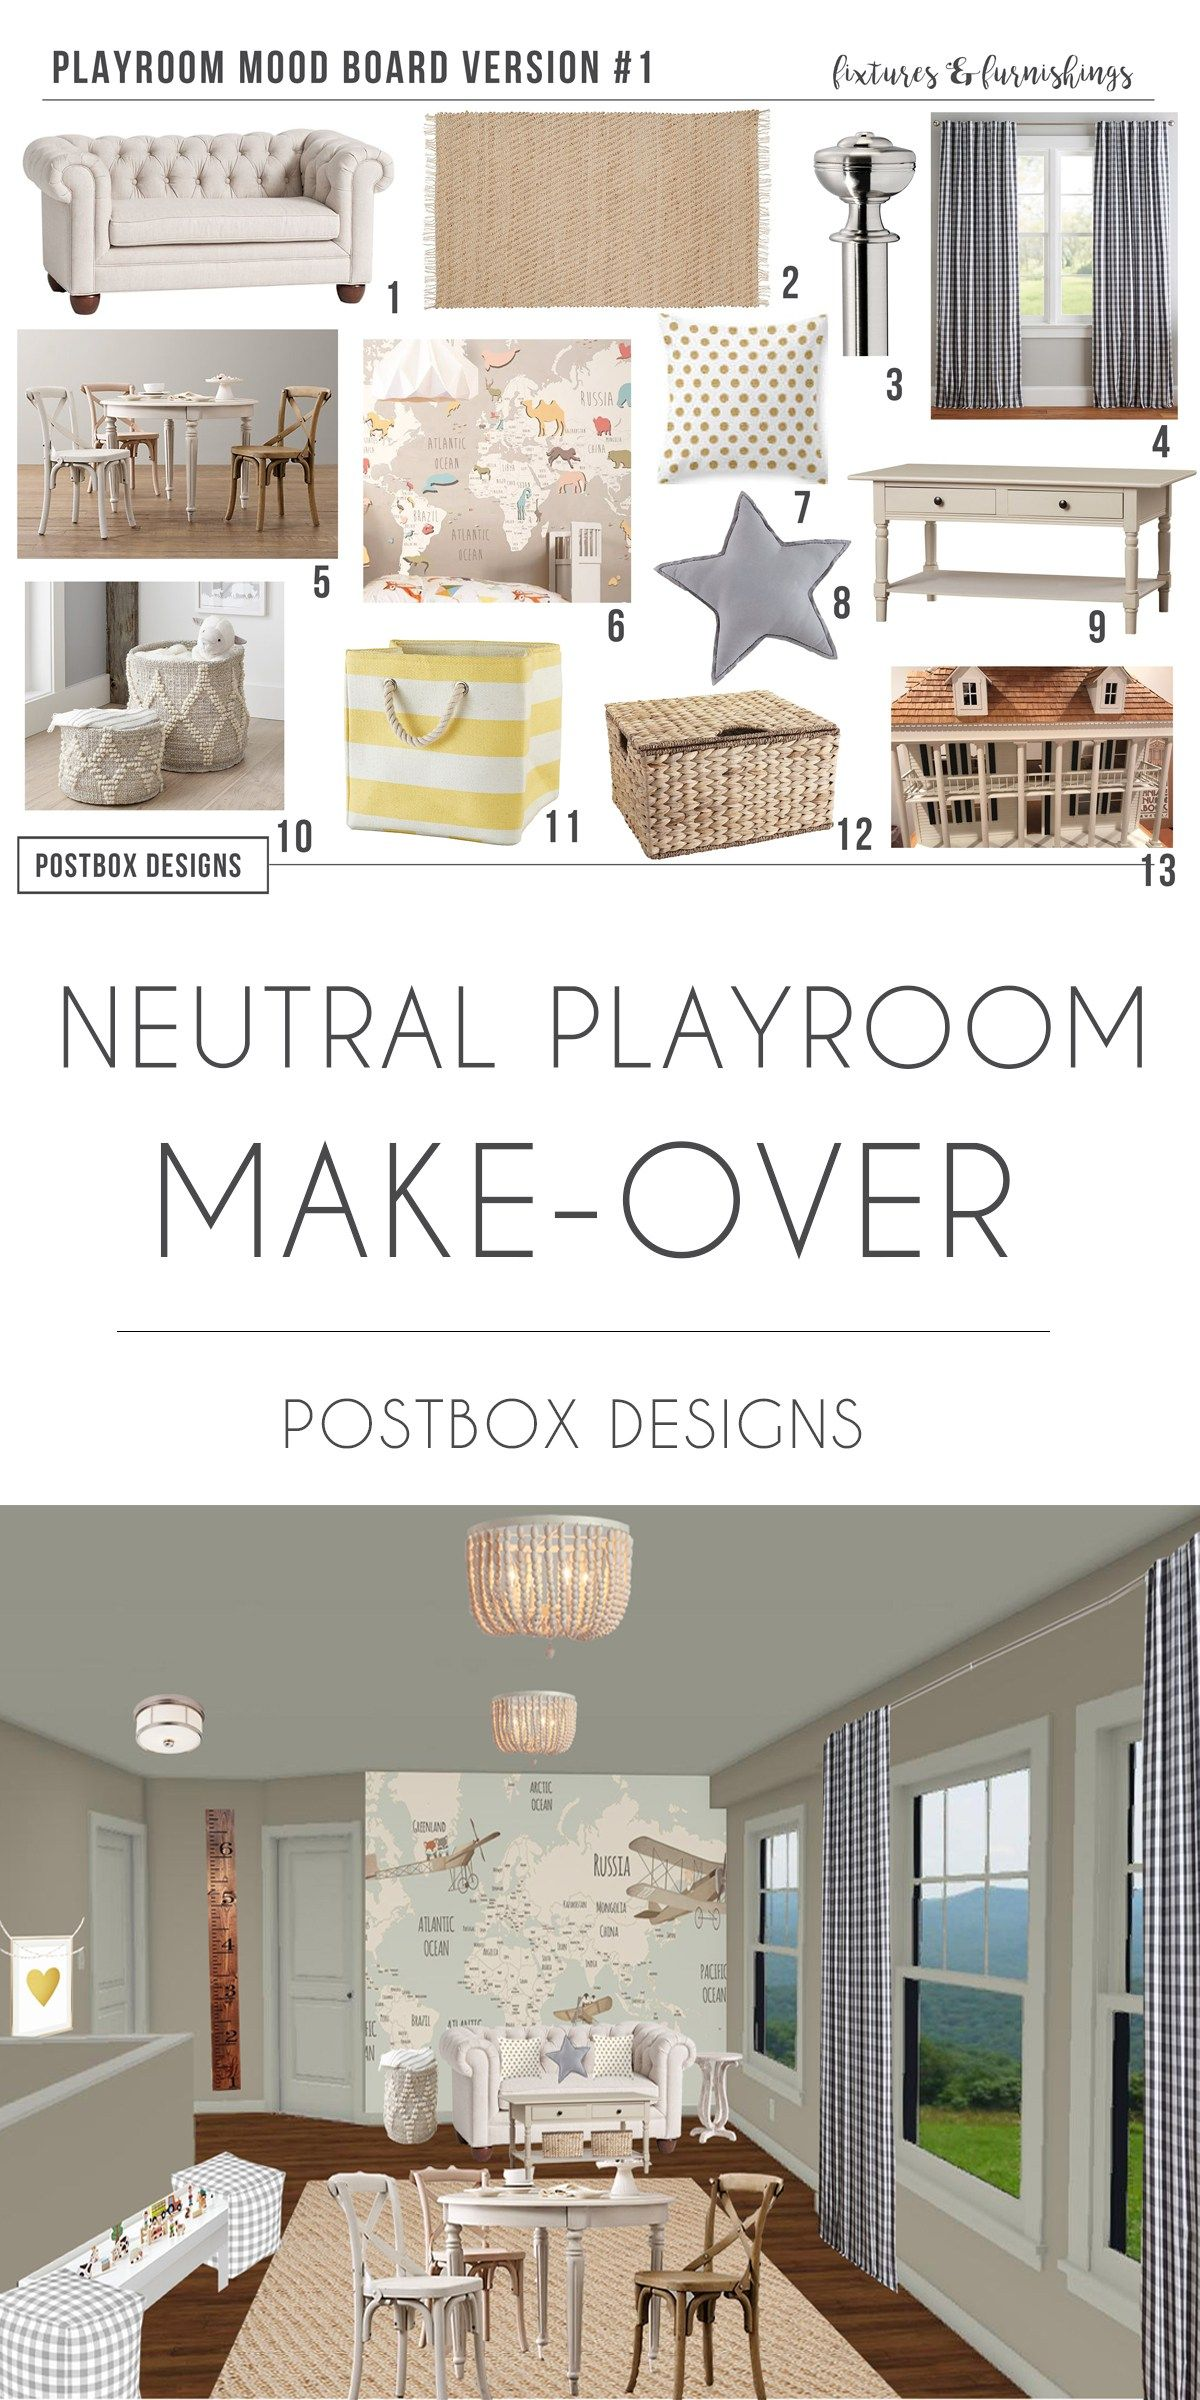 Bedroom Creator Online: Create An Adventure Themed Playroom Your Kids Will Never